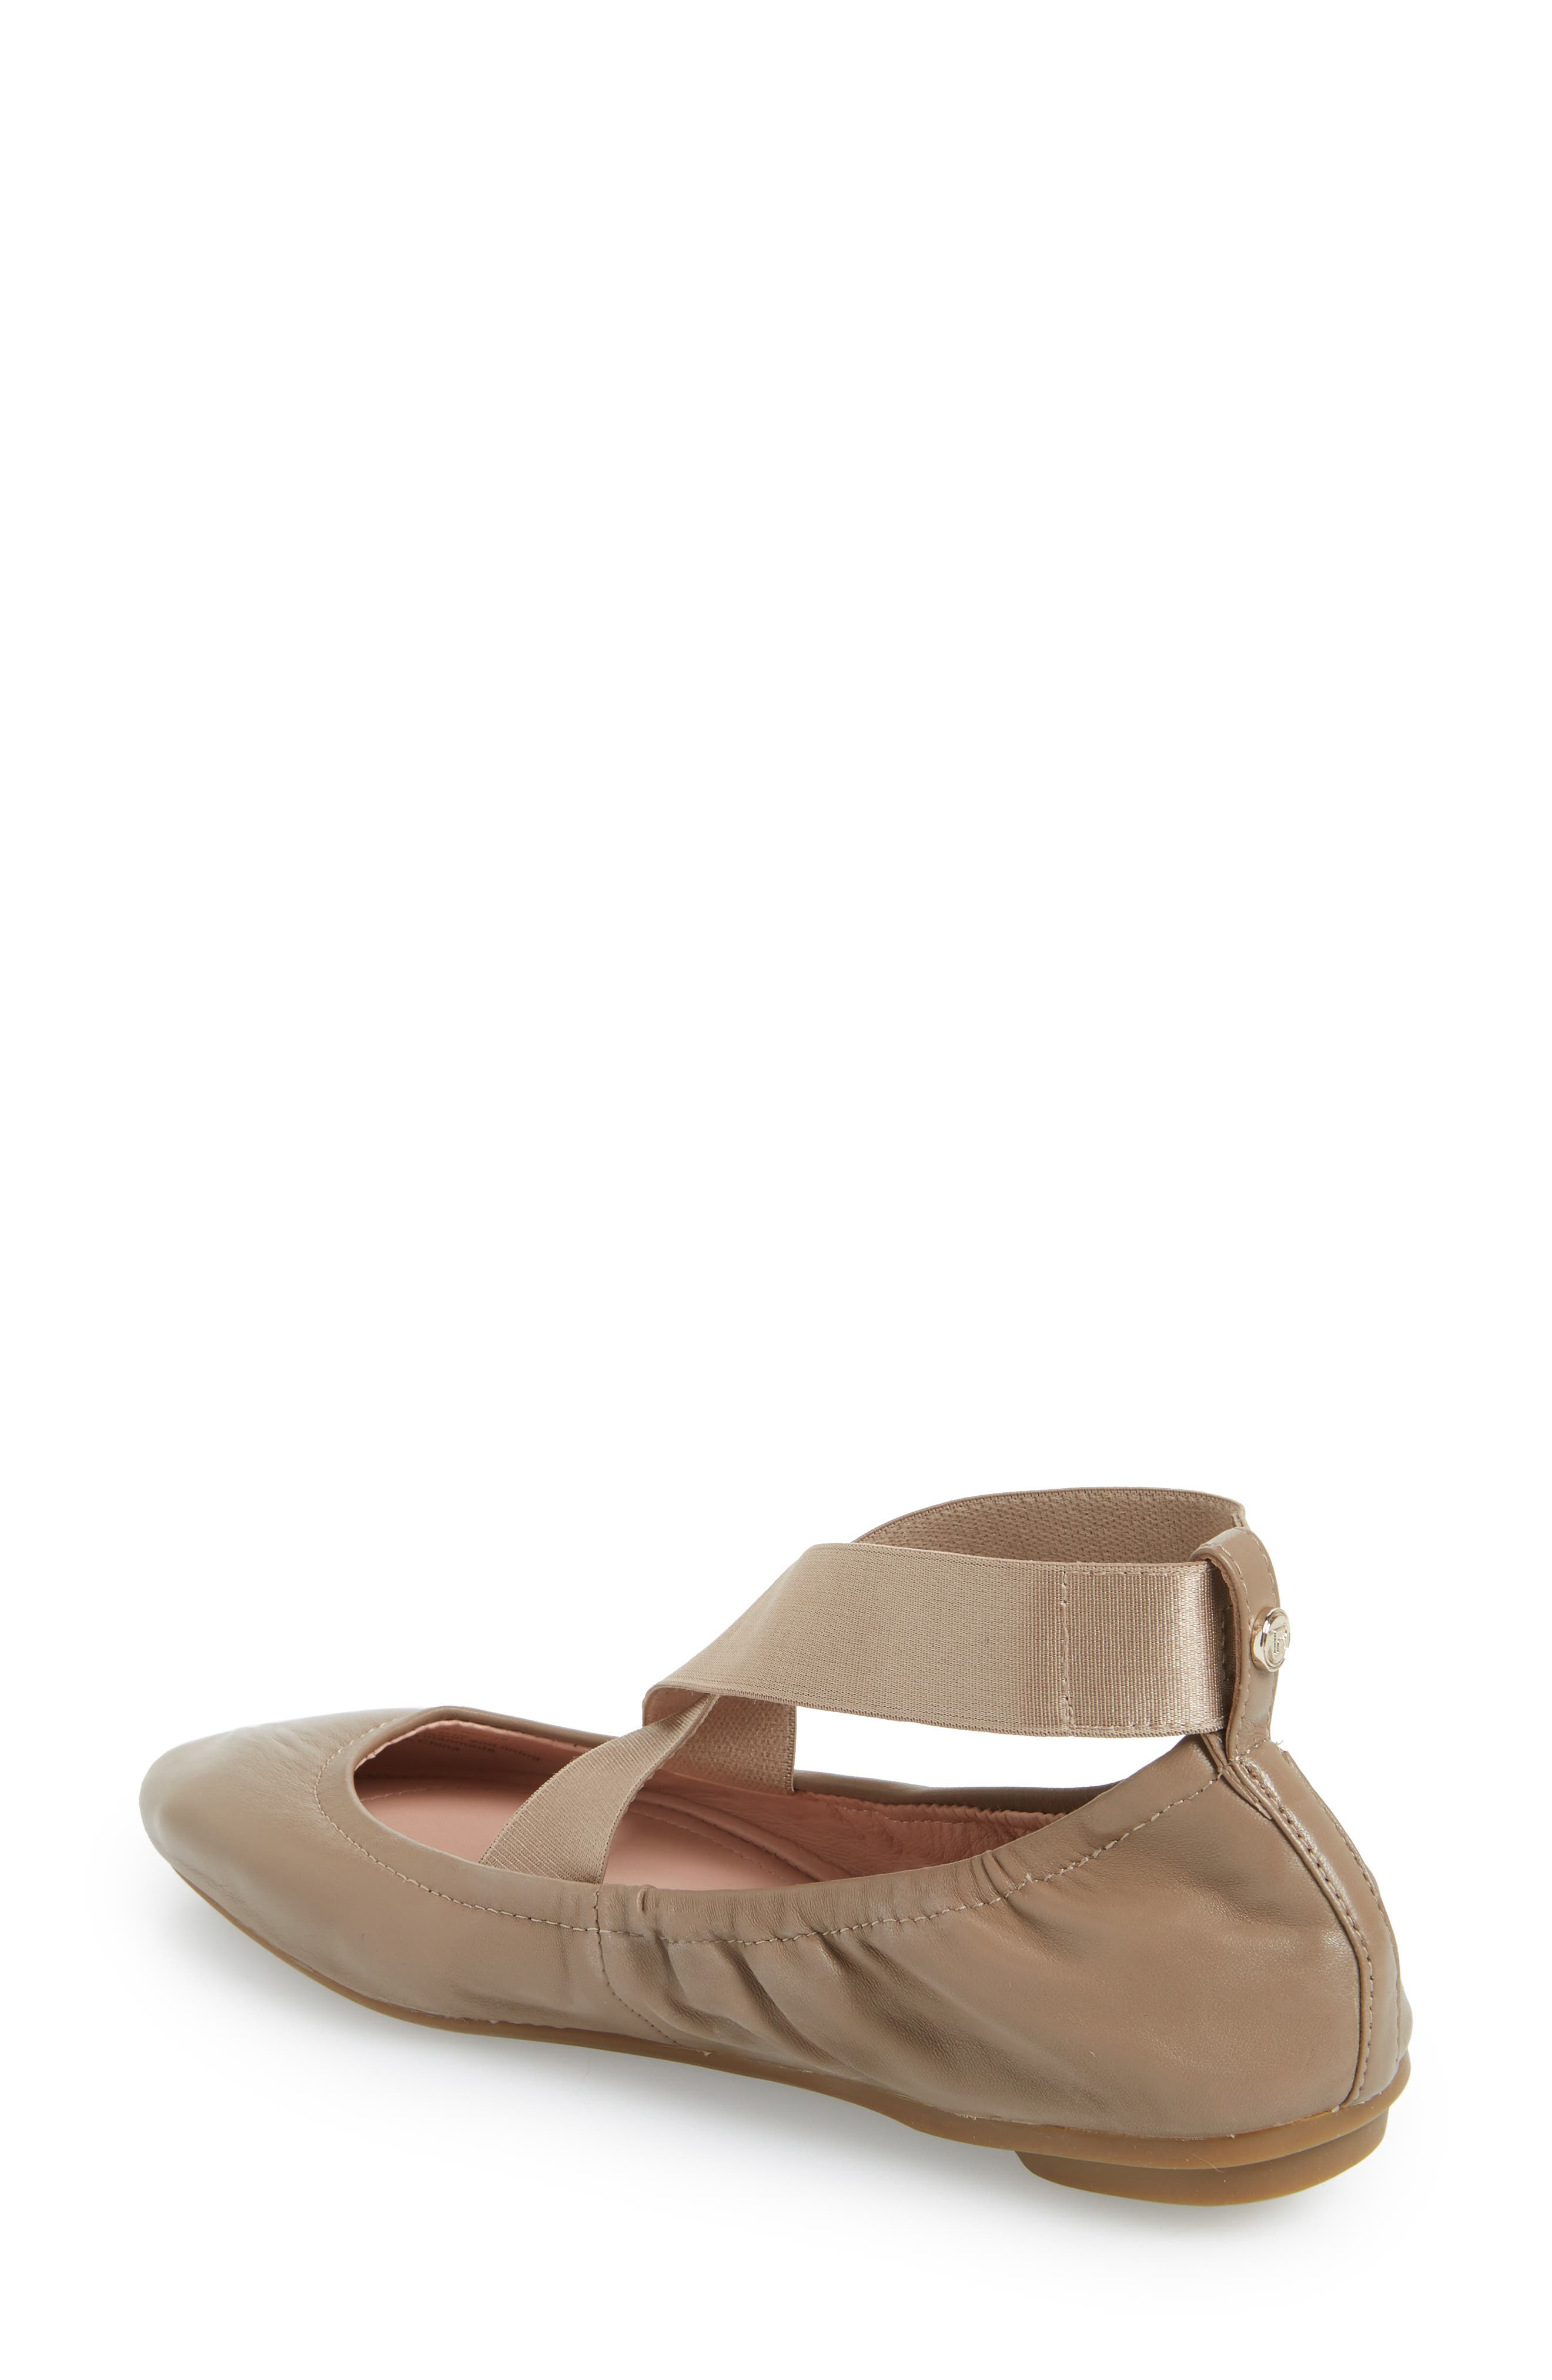 Edina Strappy Ballet Flat,                             Alternate thumbnail 2, color,                             260